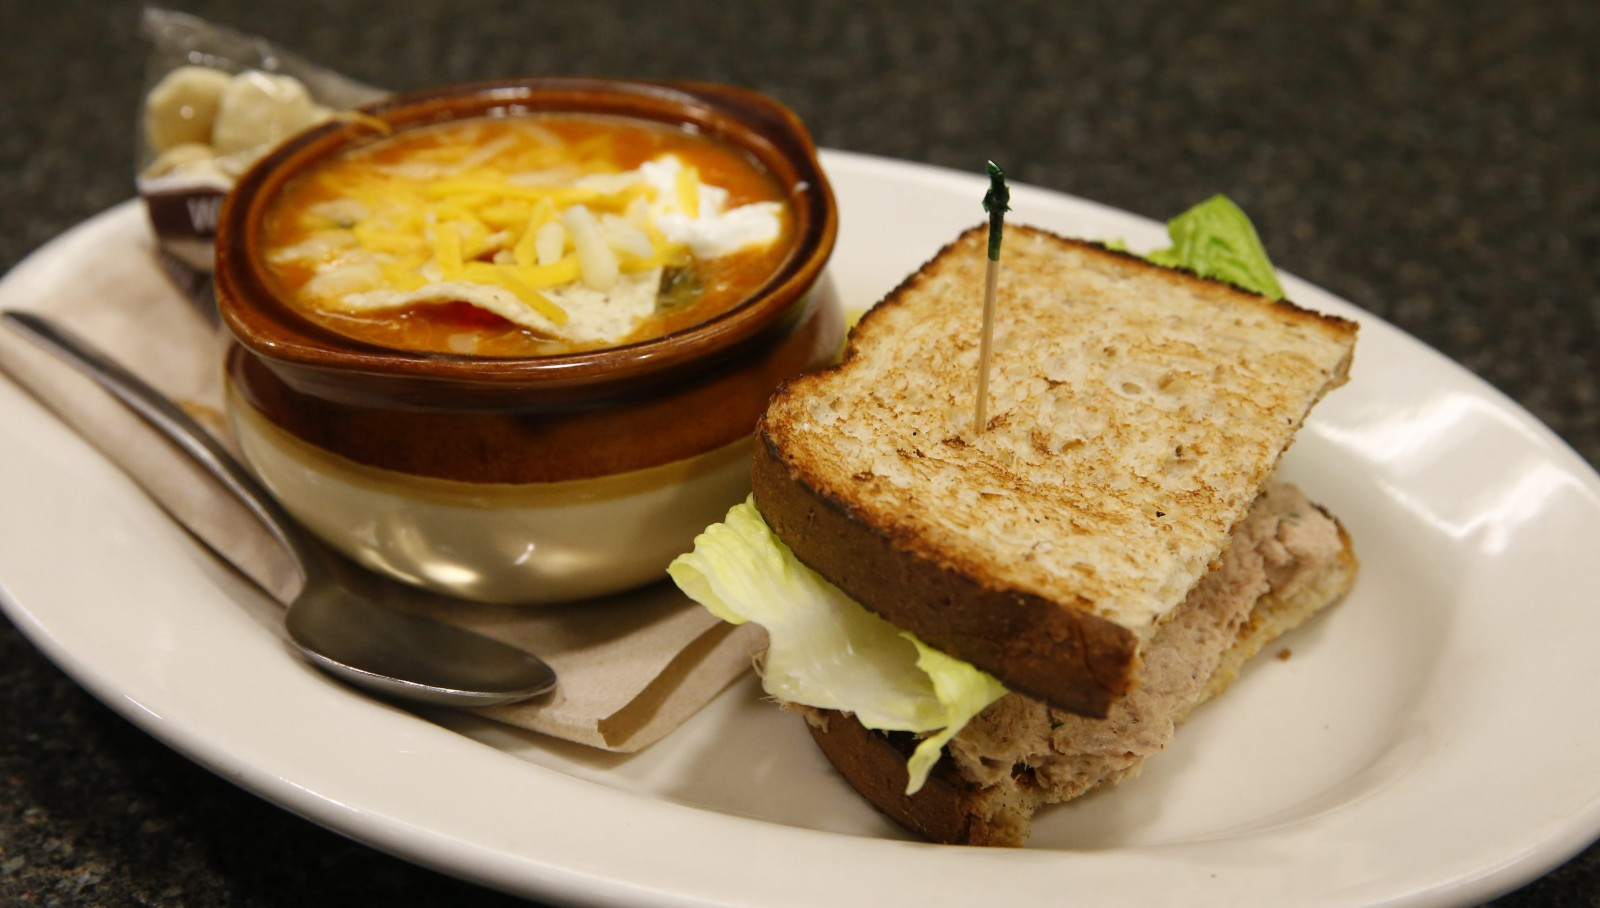 Tuna sandwich and chicken tortilla soup at The Lunch Box in the Tri-Main building. (Mark Mulville/Buffalo News)